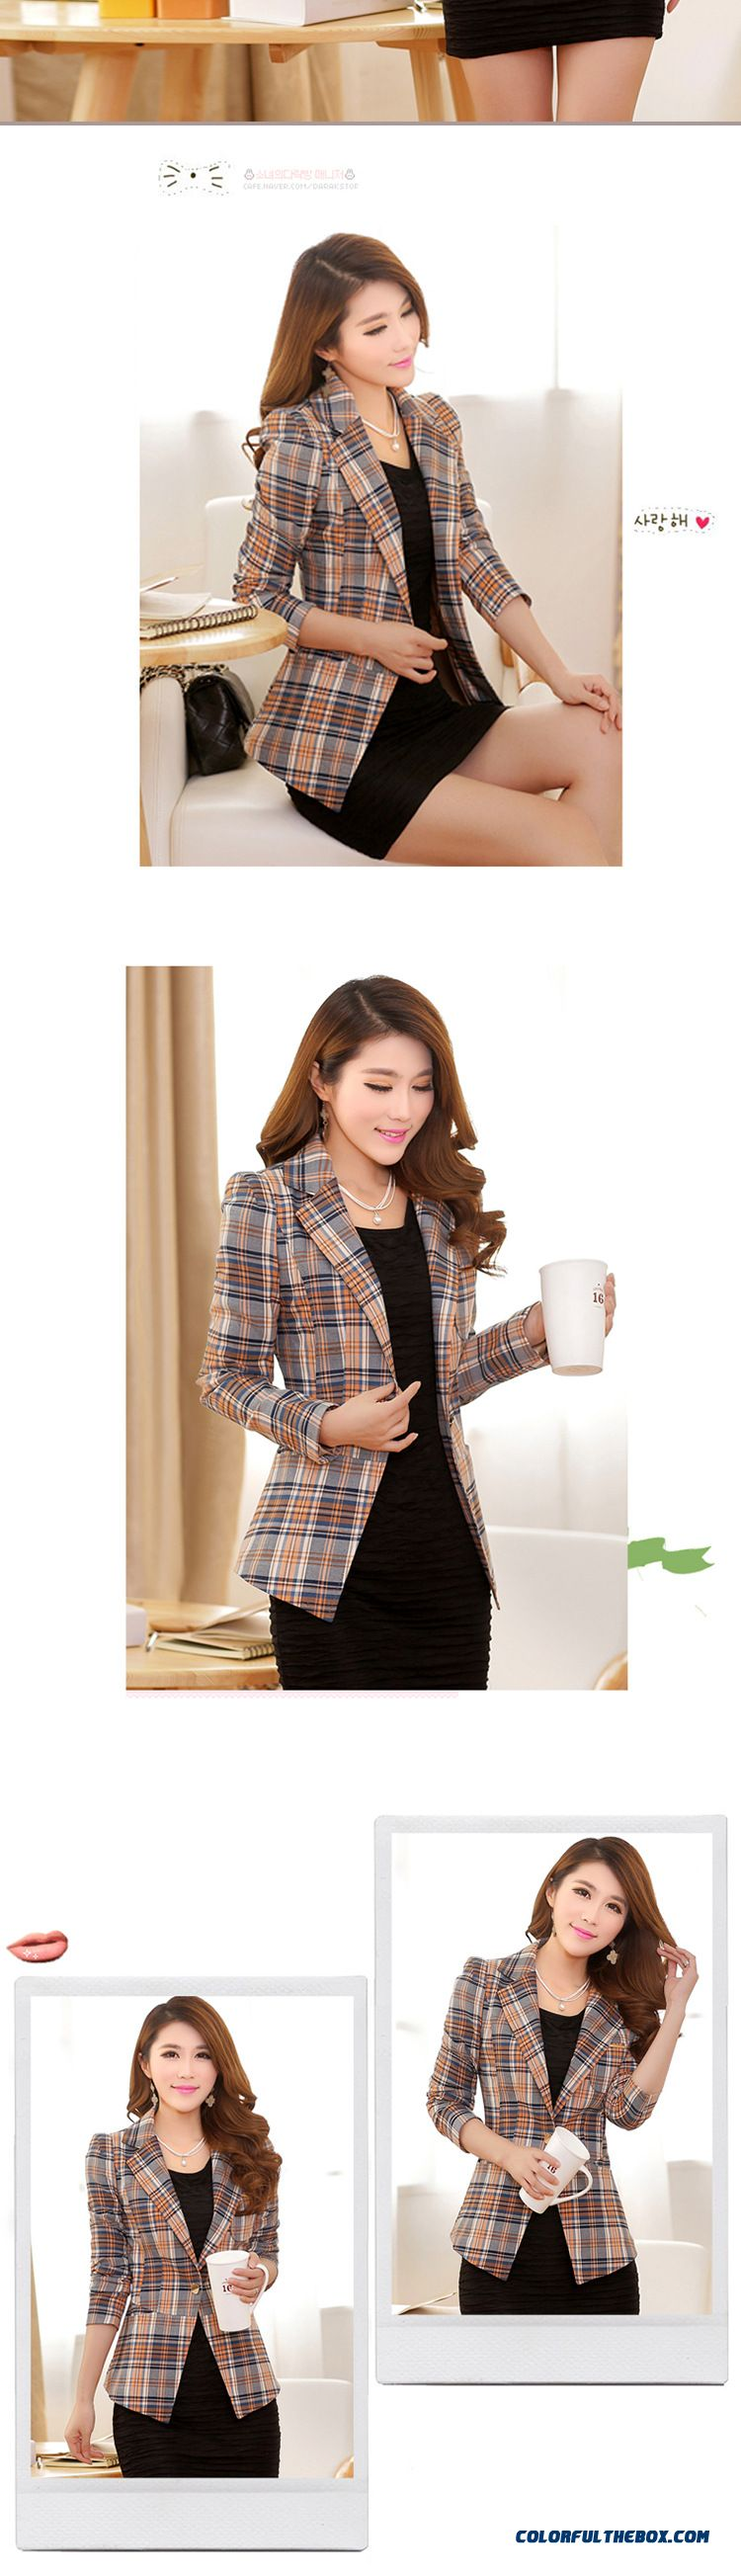 New Trend Of Fashion Women's Fashion Korean Slim Plaid Small Suit Coats - detail images